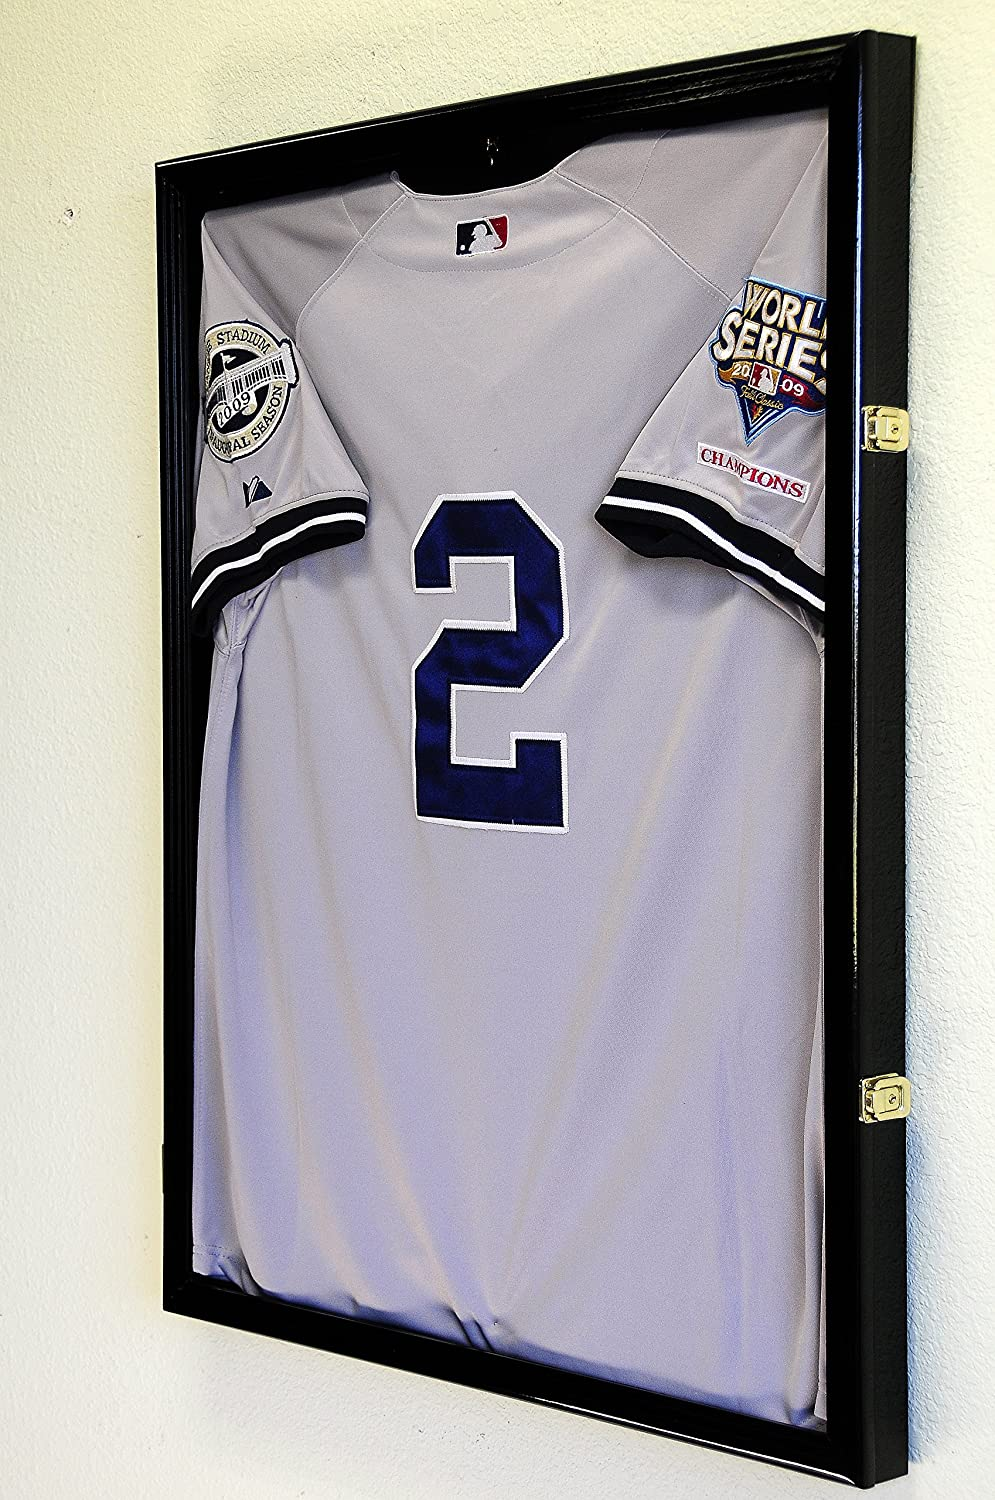 Baseball Jersey Frame Excellence Display Case Protection 98% Credence UV w Cabinet